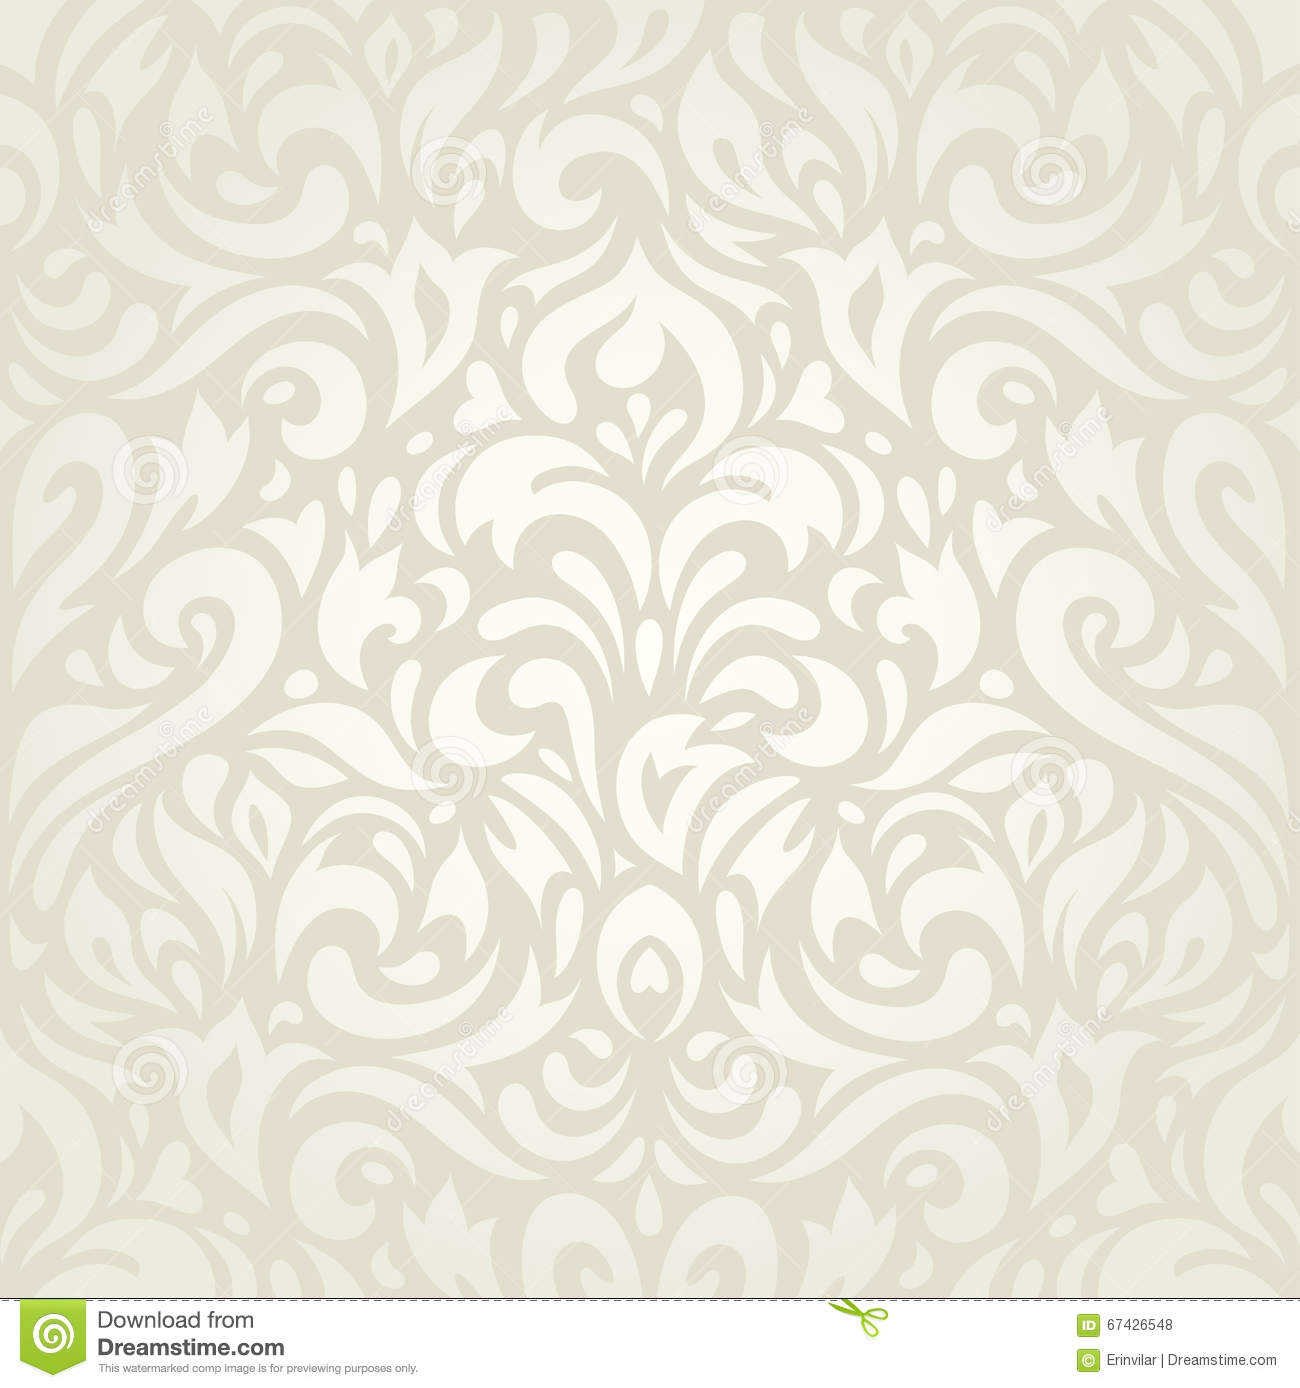 wedding vintage floral ecru wallpaper background design stock vector illustration of floral foliage 67426548 dreamstime com